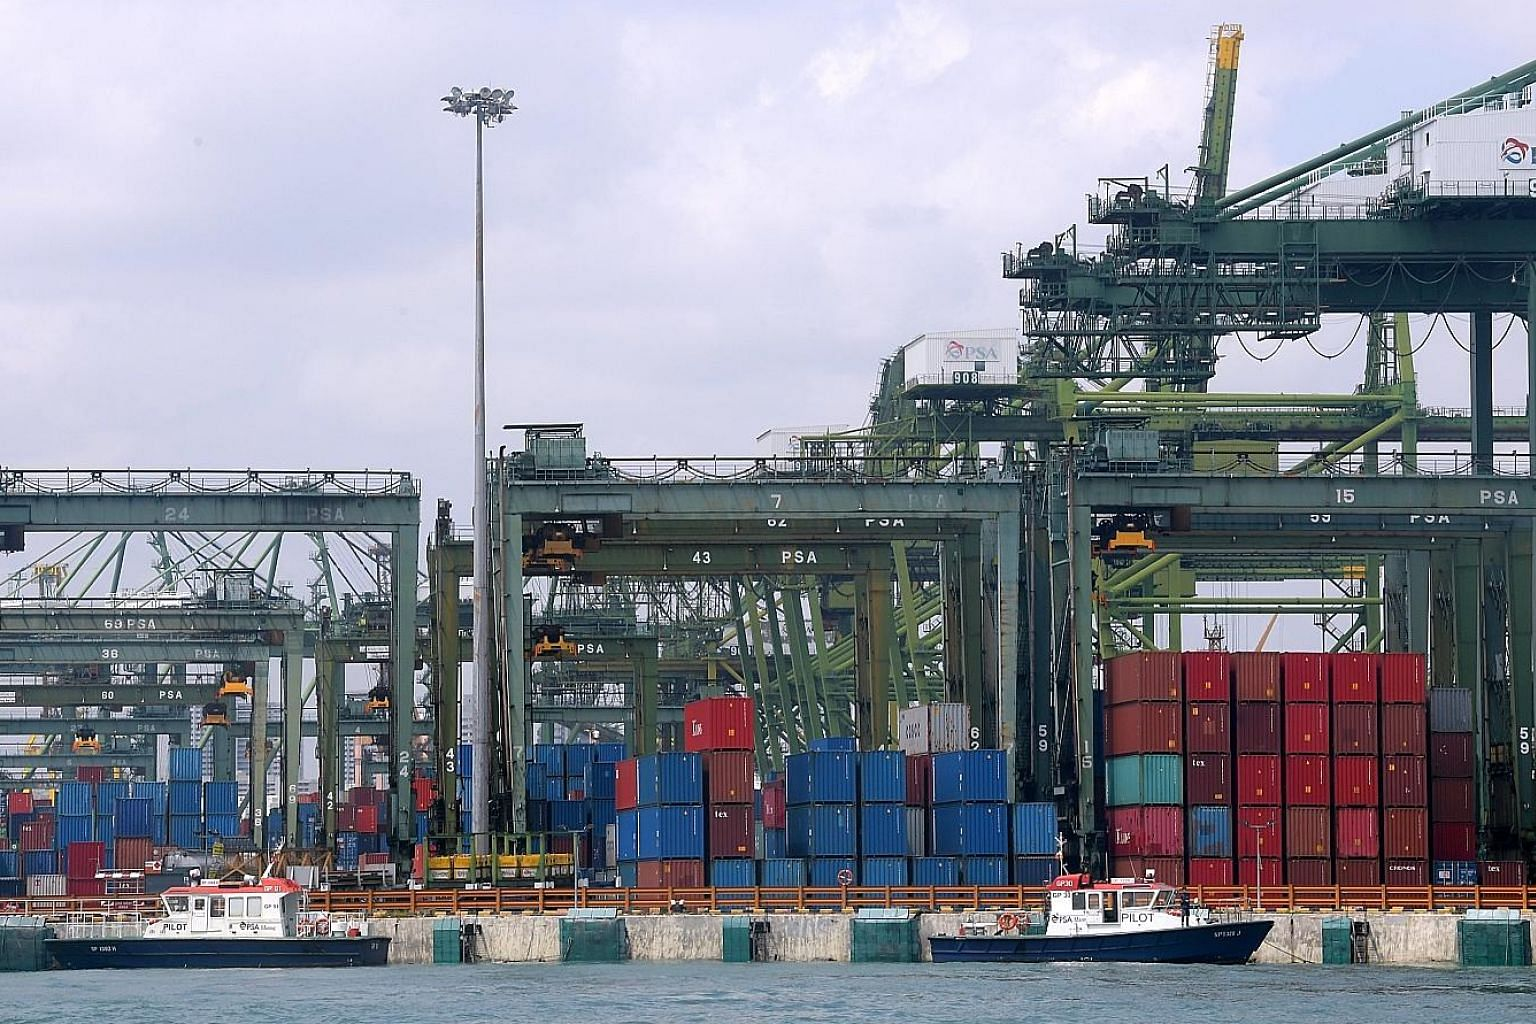 Last month was the third straight month of year-on-year gains for non-oil domestic exports, despite a gloomy economic climate.